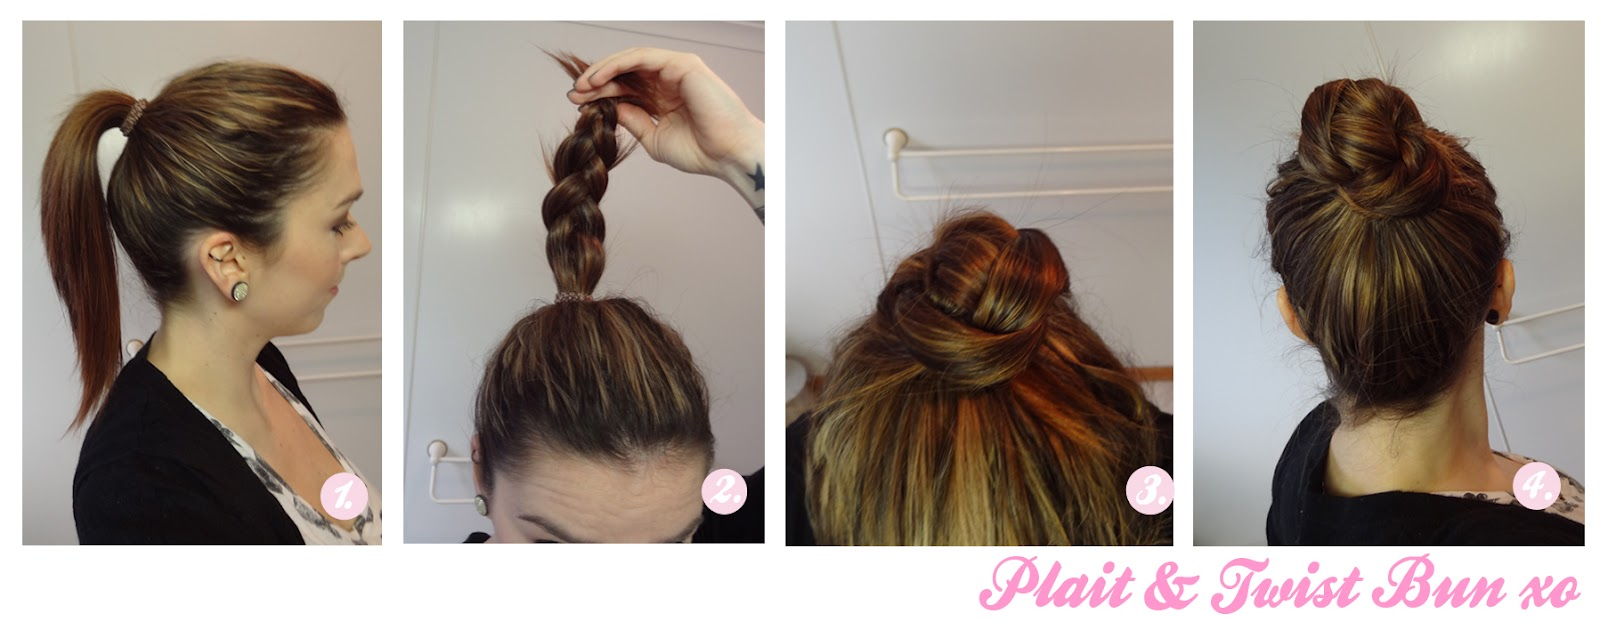 To acquire How to do a hair high bun pictures trends